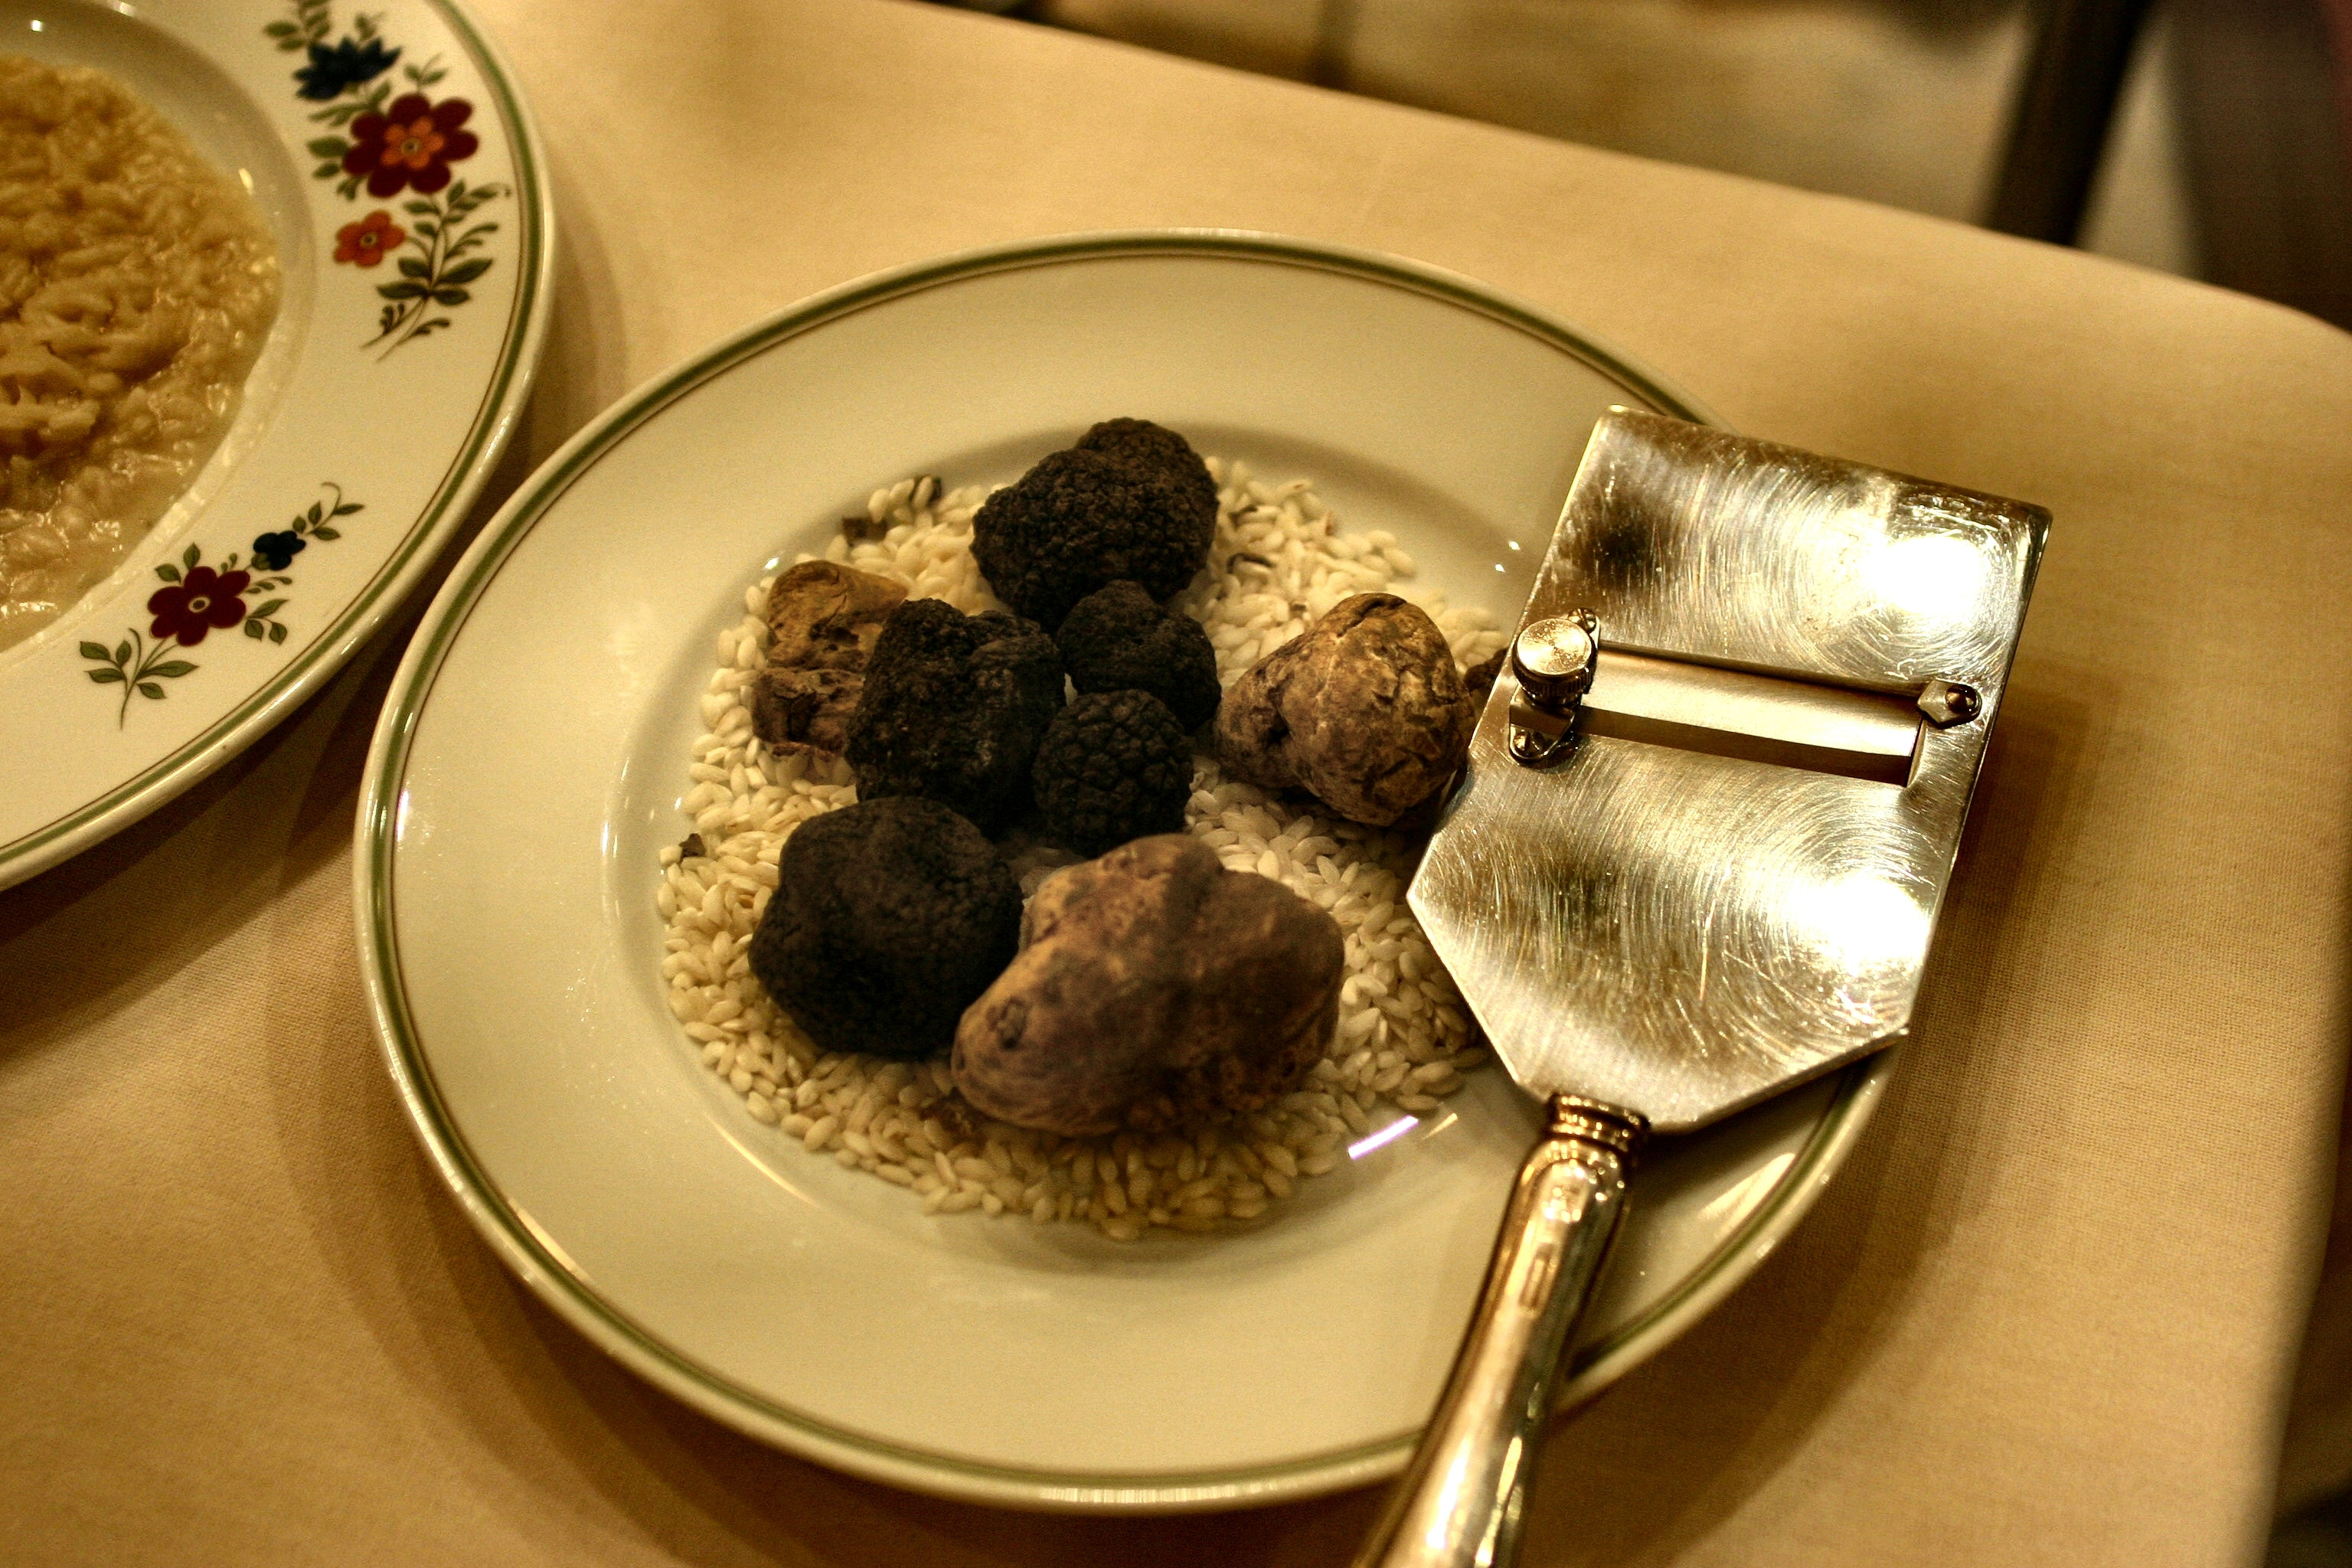 Photo of Truffles on the Plate, Blur, Ingredients, Table, Still life, HQ Photo